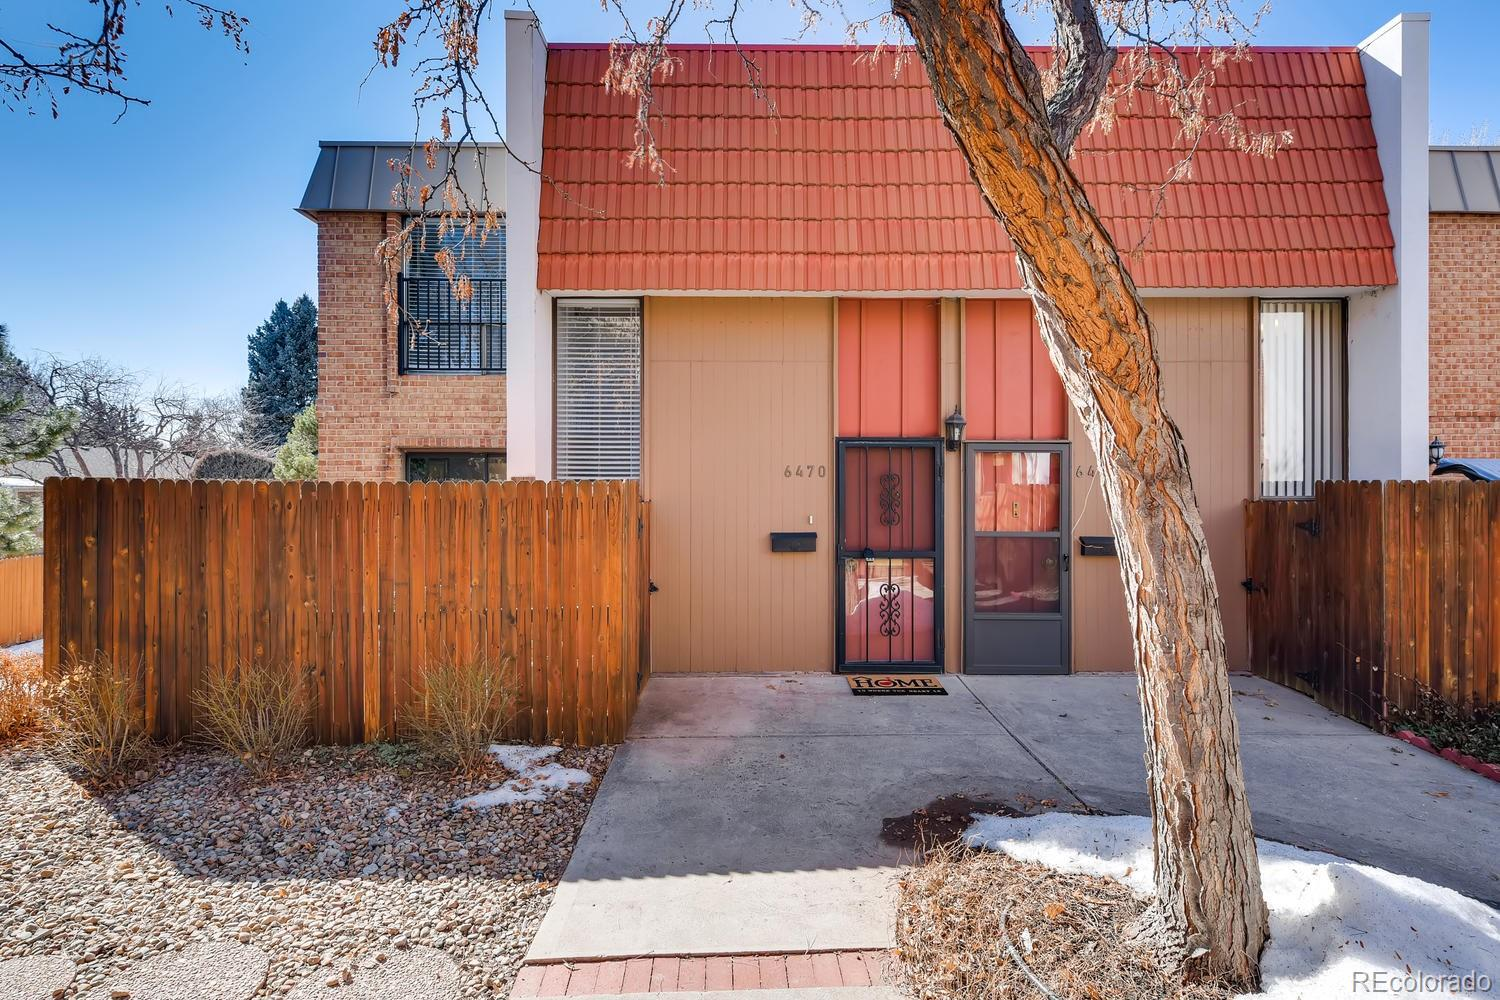 MLS# 7933385 - 24 - 6470 E Bates Avenue, Denver, CO 80222